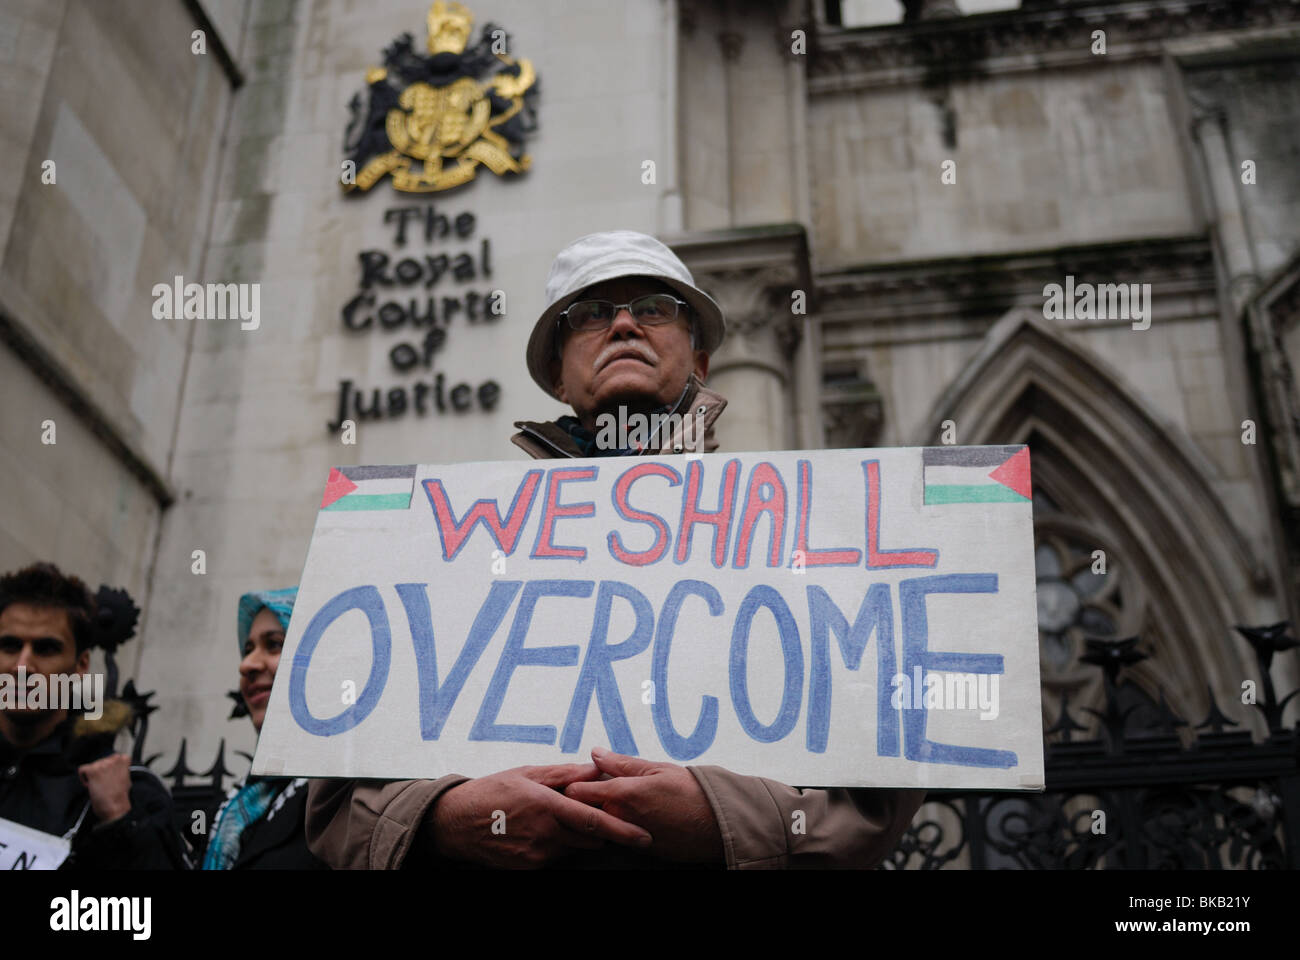 A member of the Palestinian Solidarity Campaign demonstrates outside the Royal Courts of Justice in the Strand. - Stock Image